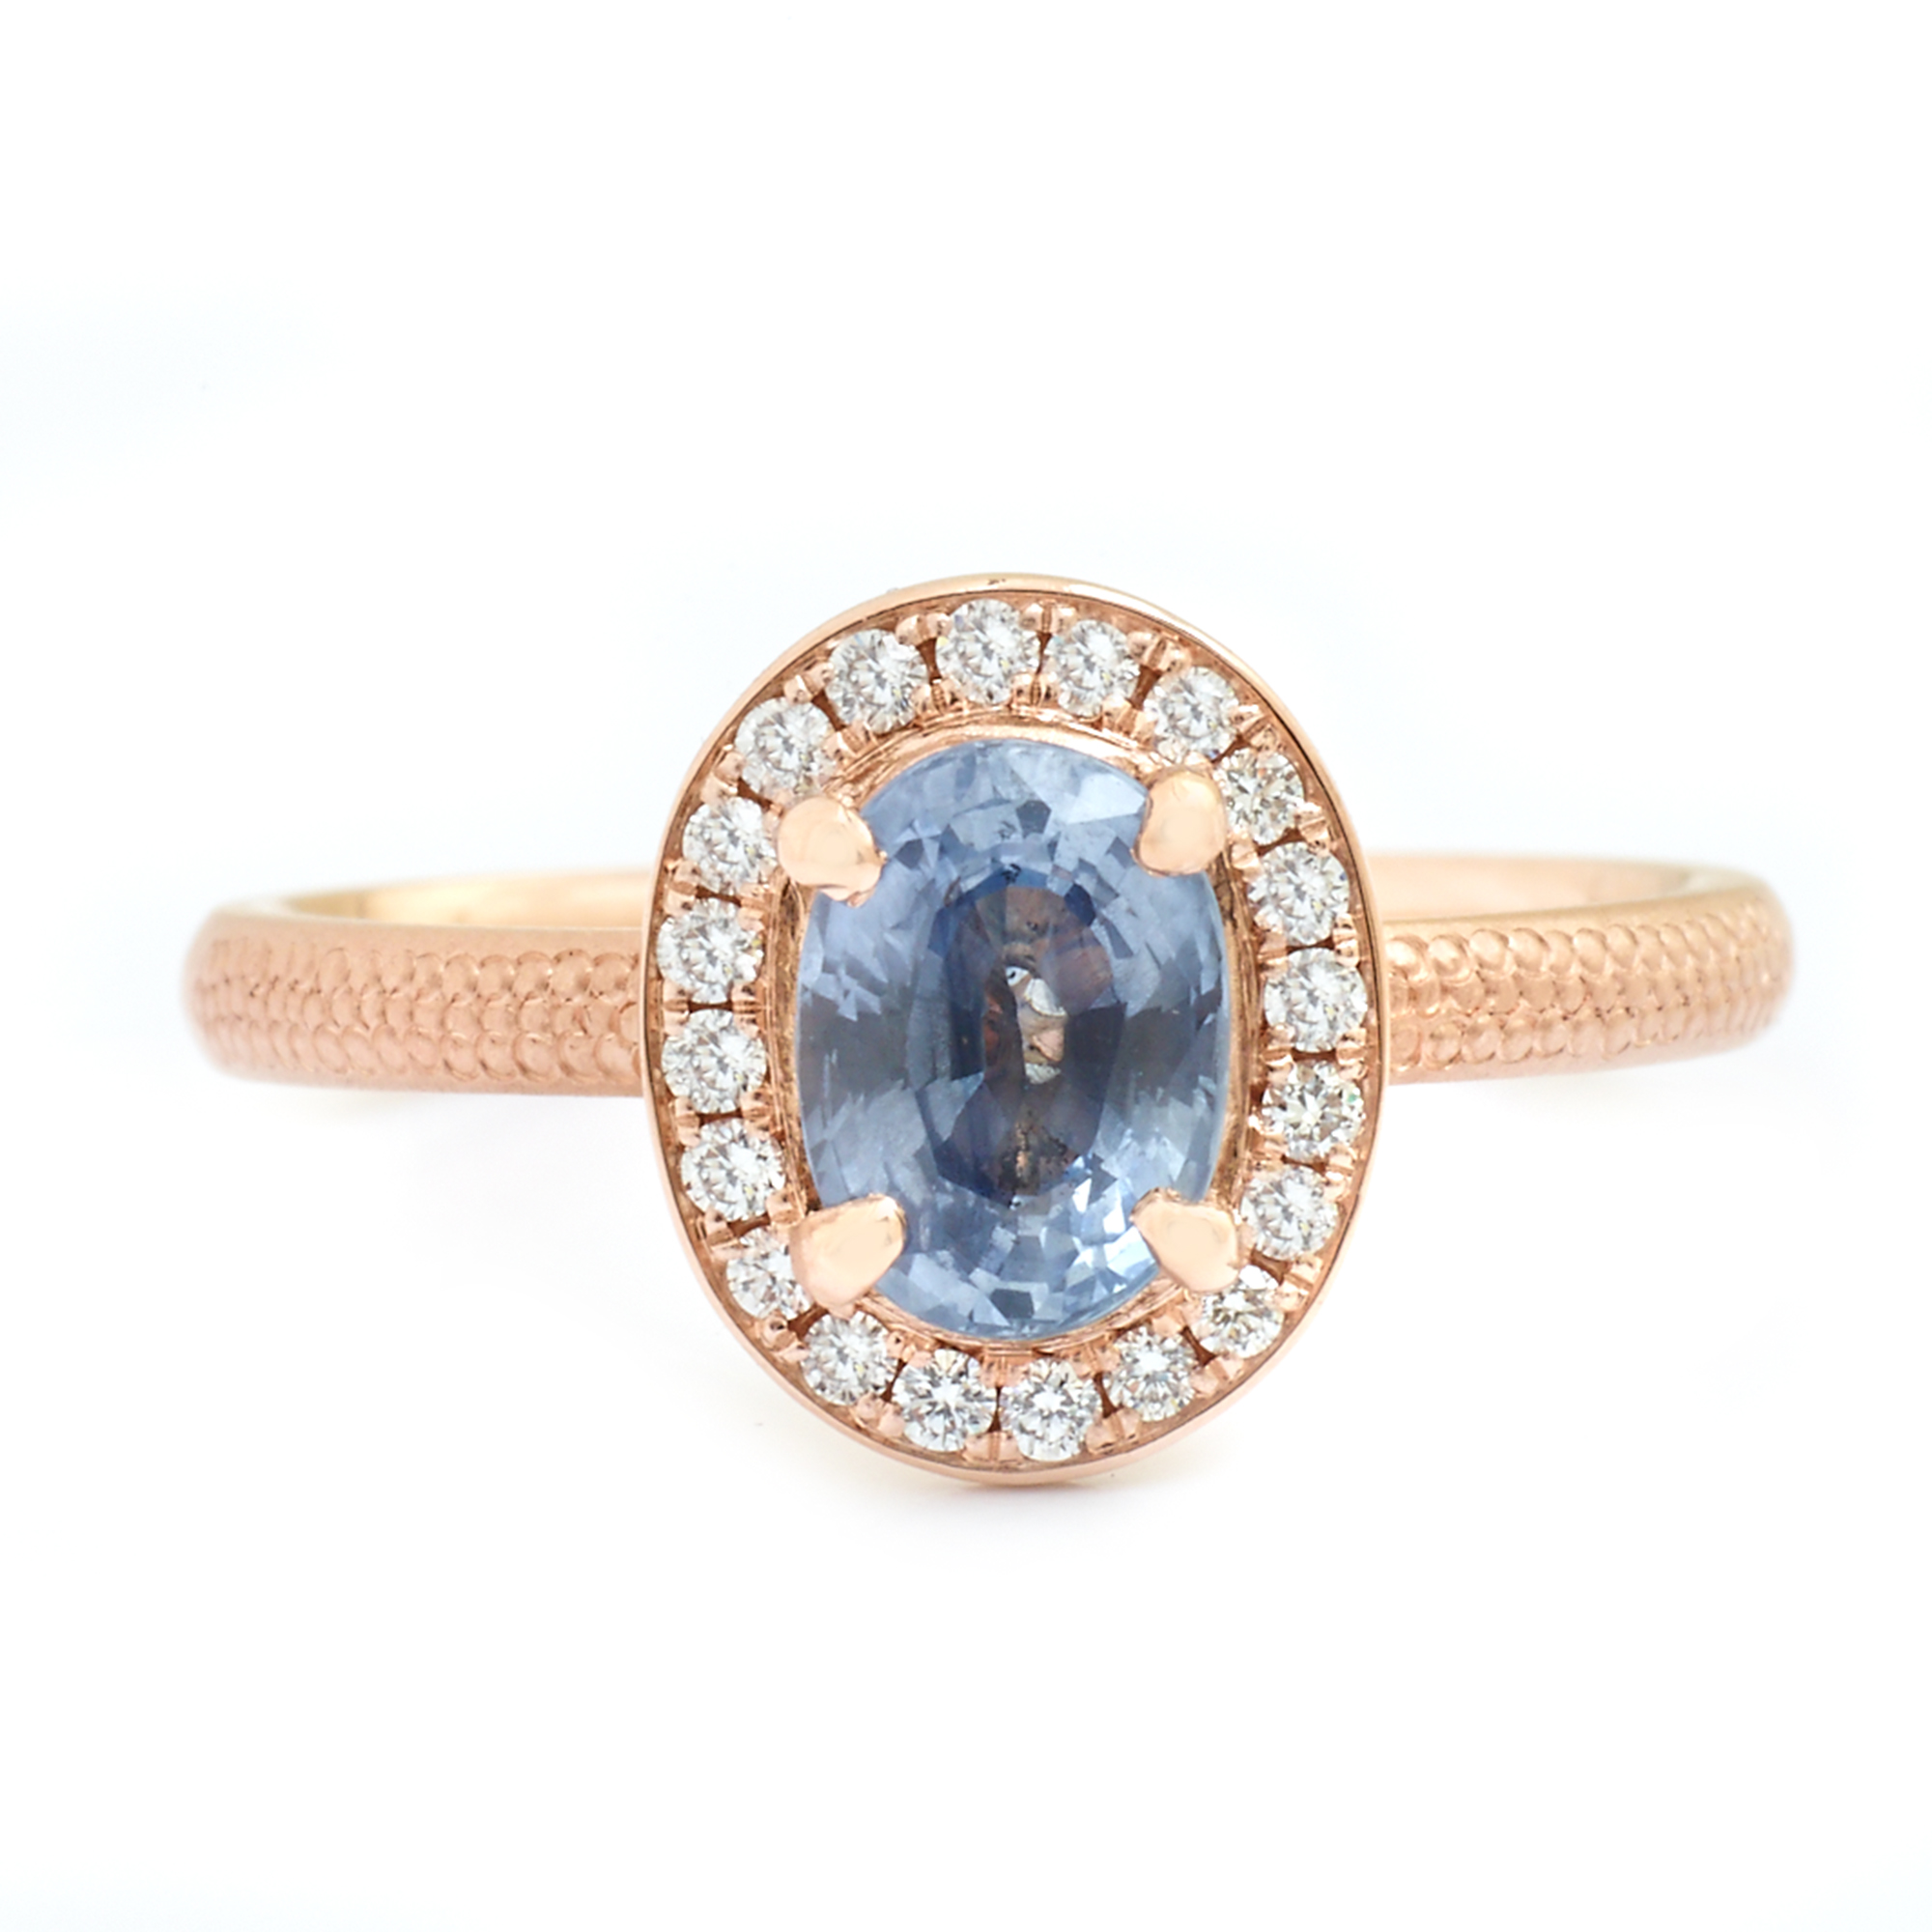 bands kong previous ovalsapphirering next hong product sapphire modern engagement ring of diamond haywards and